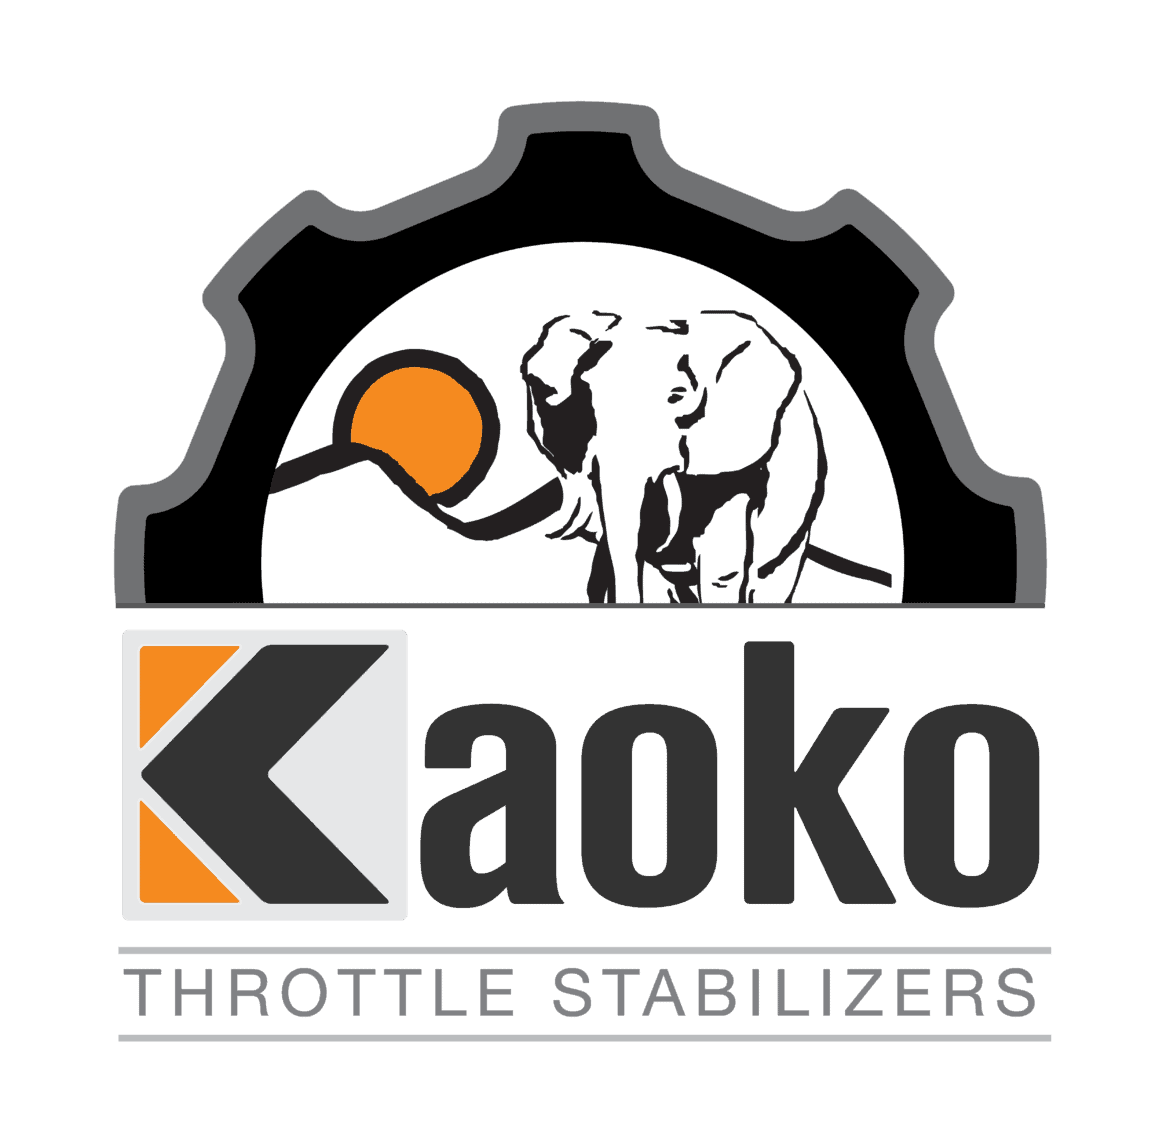 Kaoko Throttle Stabilizer